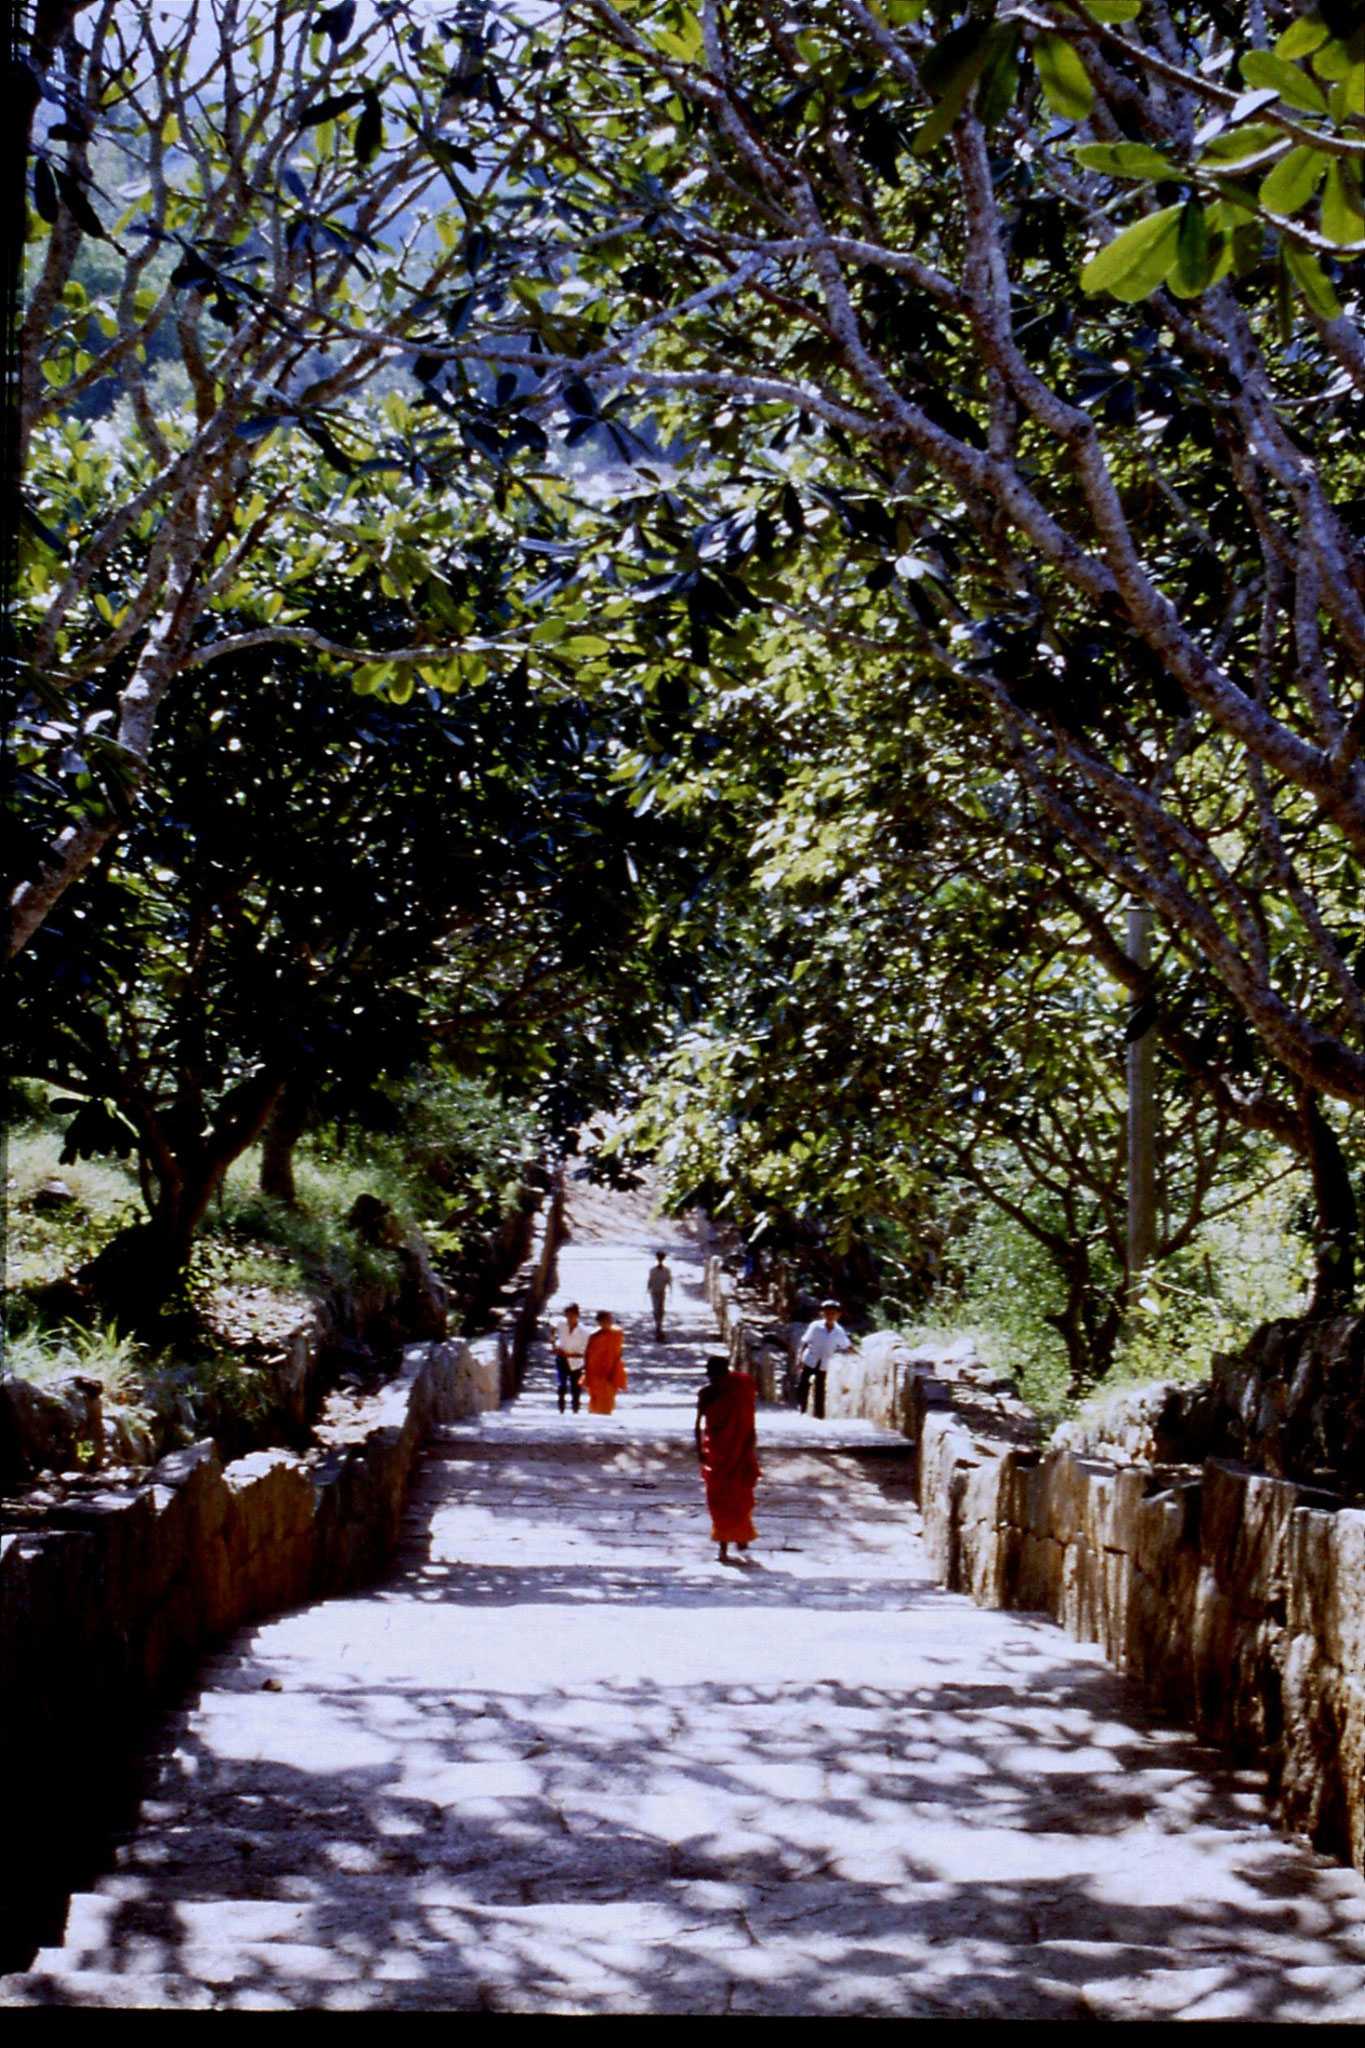 104/2: 8/2/1990 two monks on staircase at Mihintale